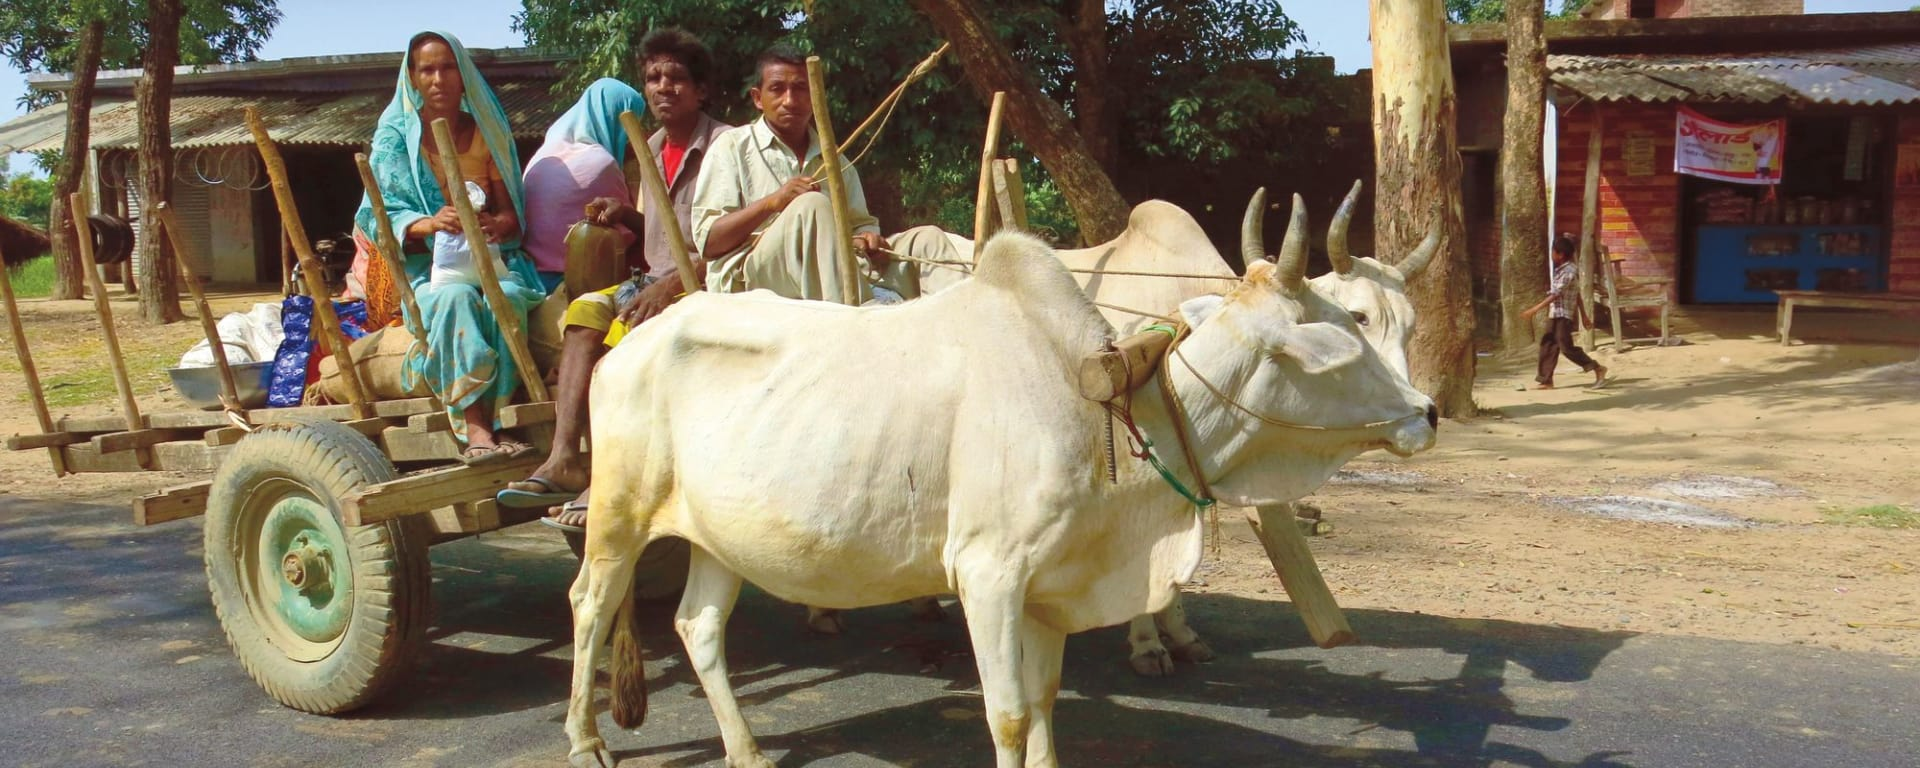 Jaagir Lodge Safari ab Lucknow: Oxcart in Lakhimpur Kheri